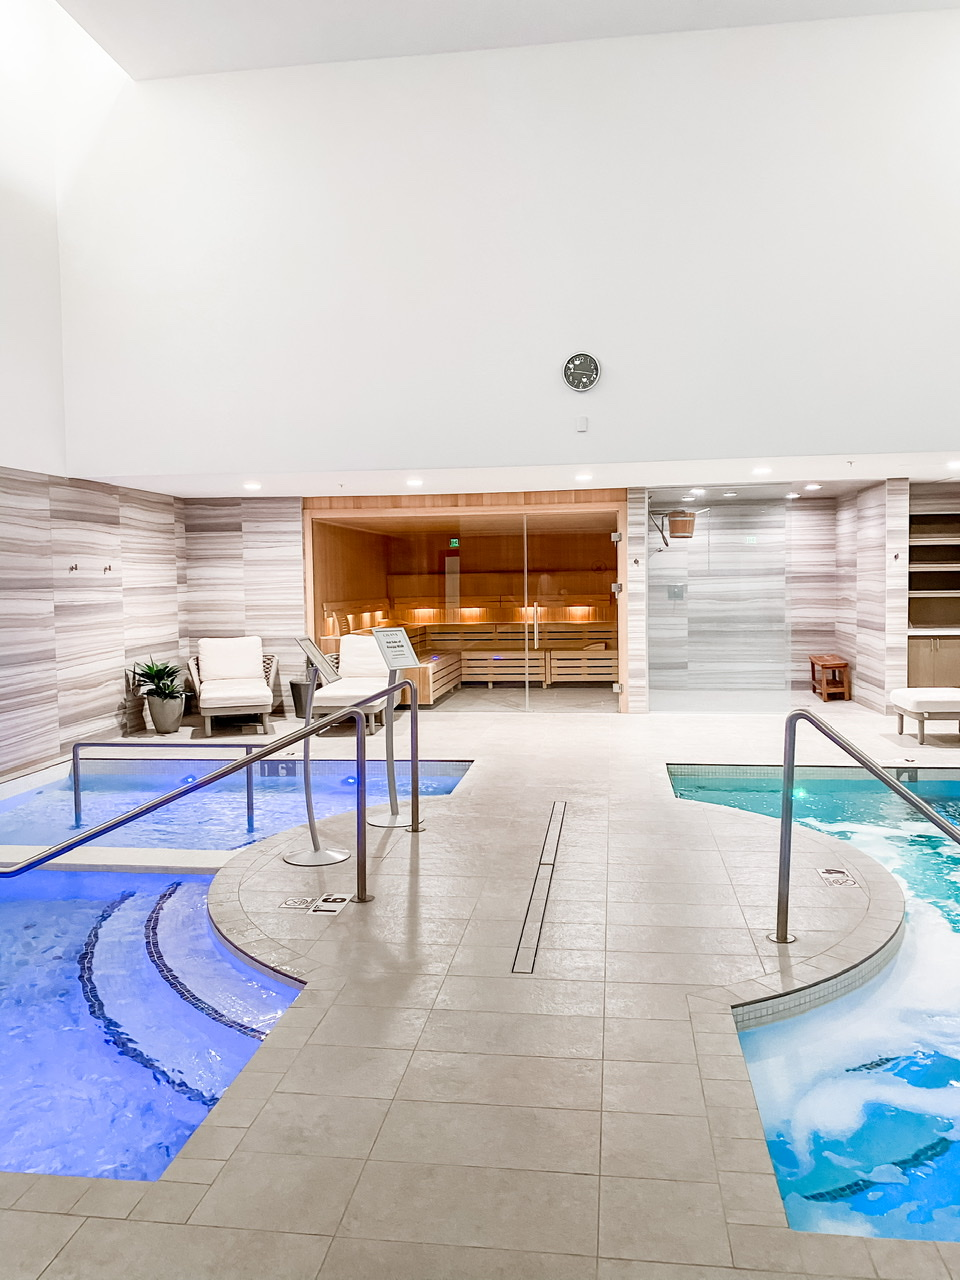 The hot and cold pools inside of the spa at Civana Wellness Resort in Carefree, Arizona.